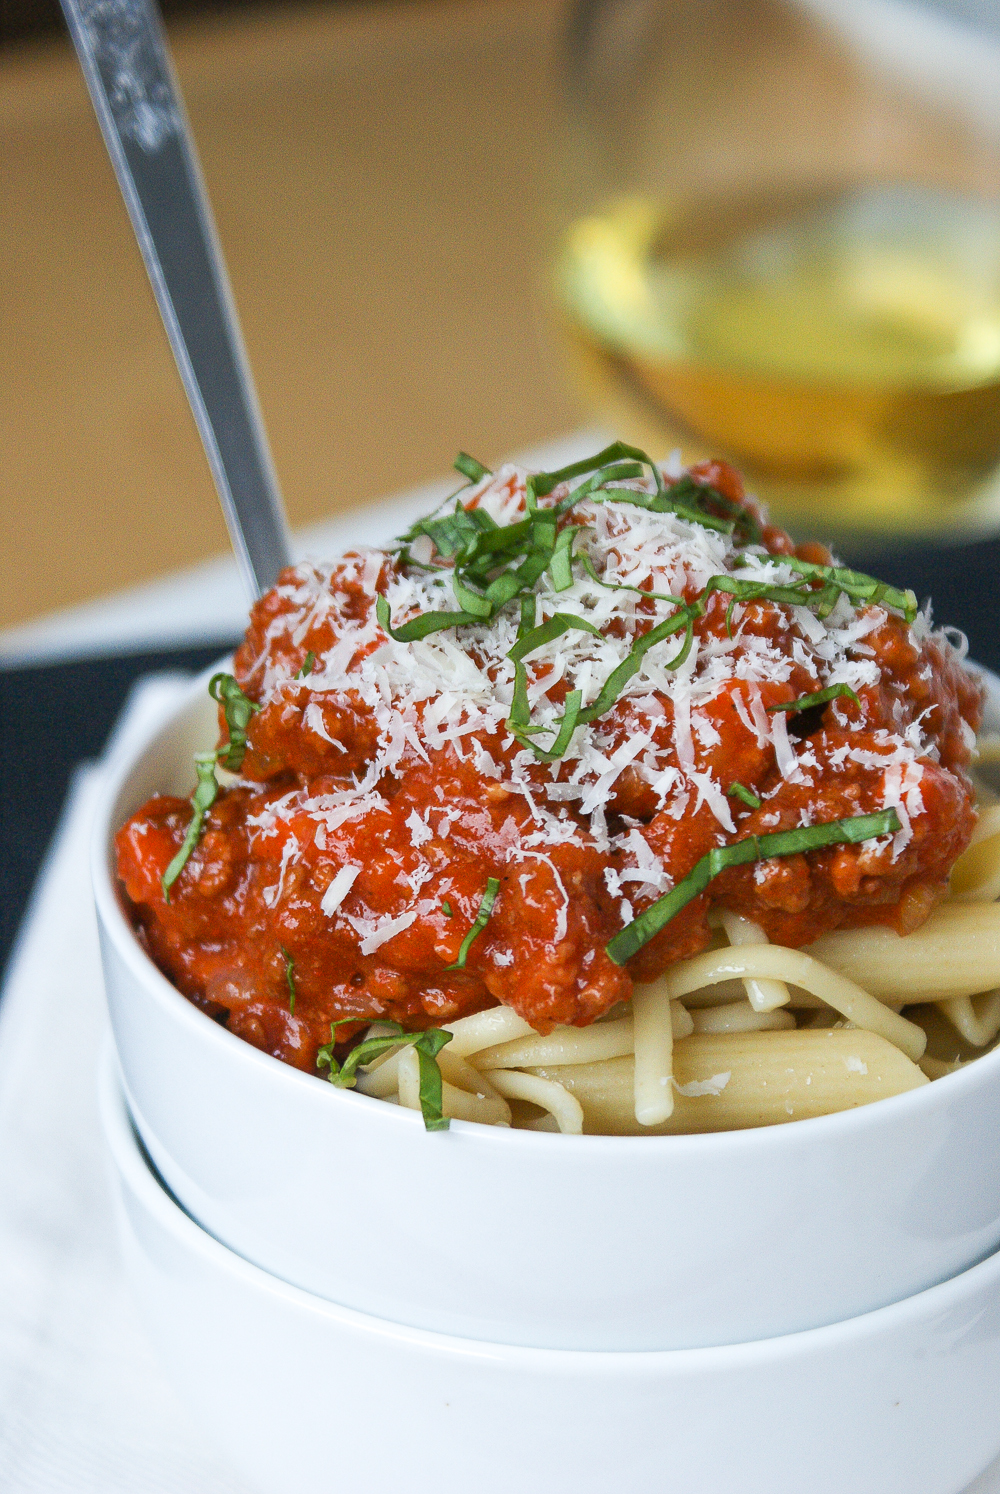 Flavorful, make it and leave it, delicious Bolognese style pasta sauce